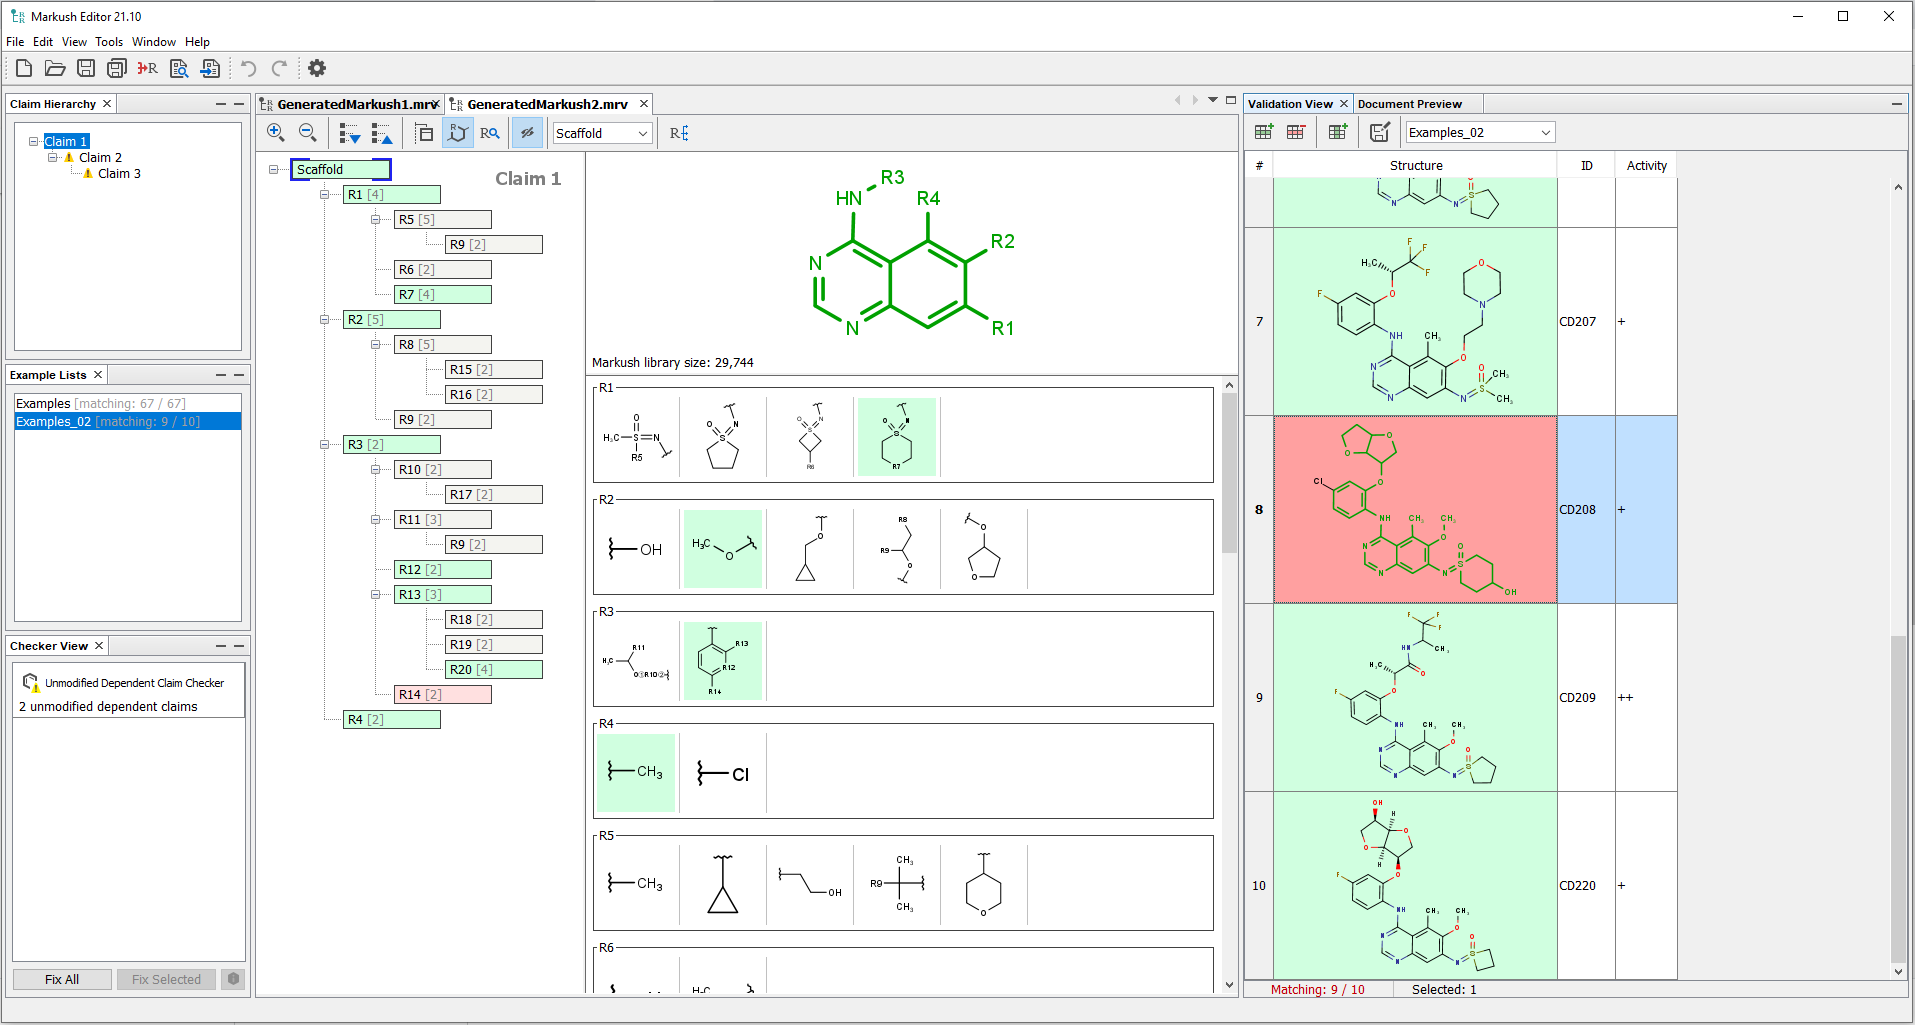 Canvas of Markush Editor with the tree-like visualization